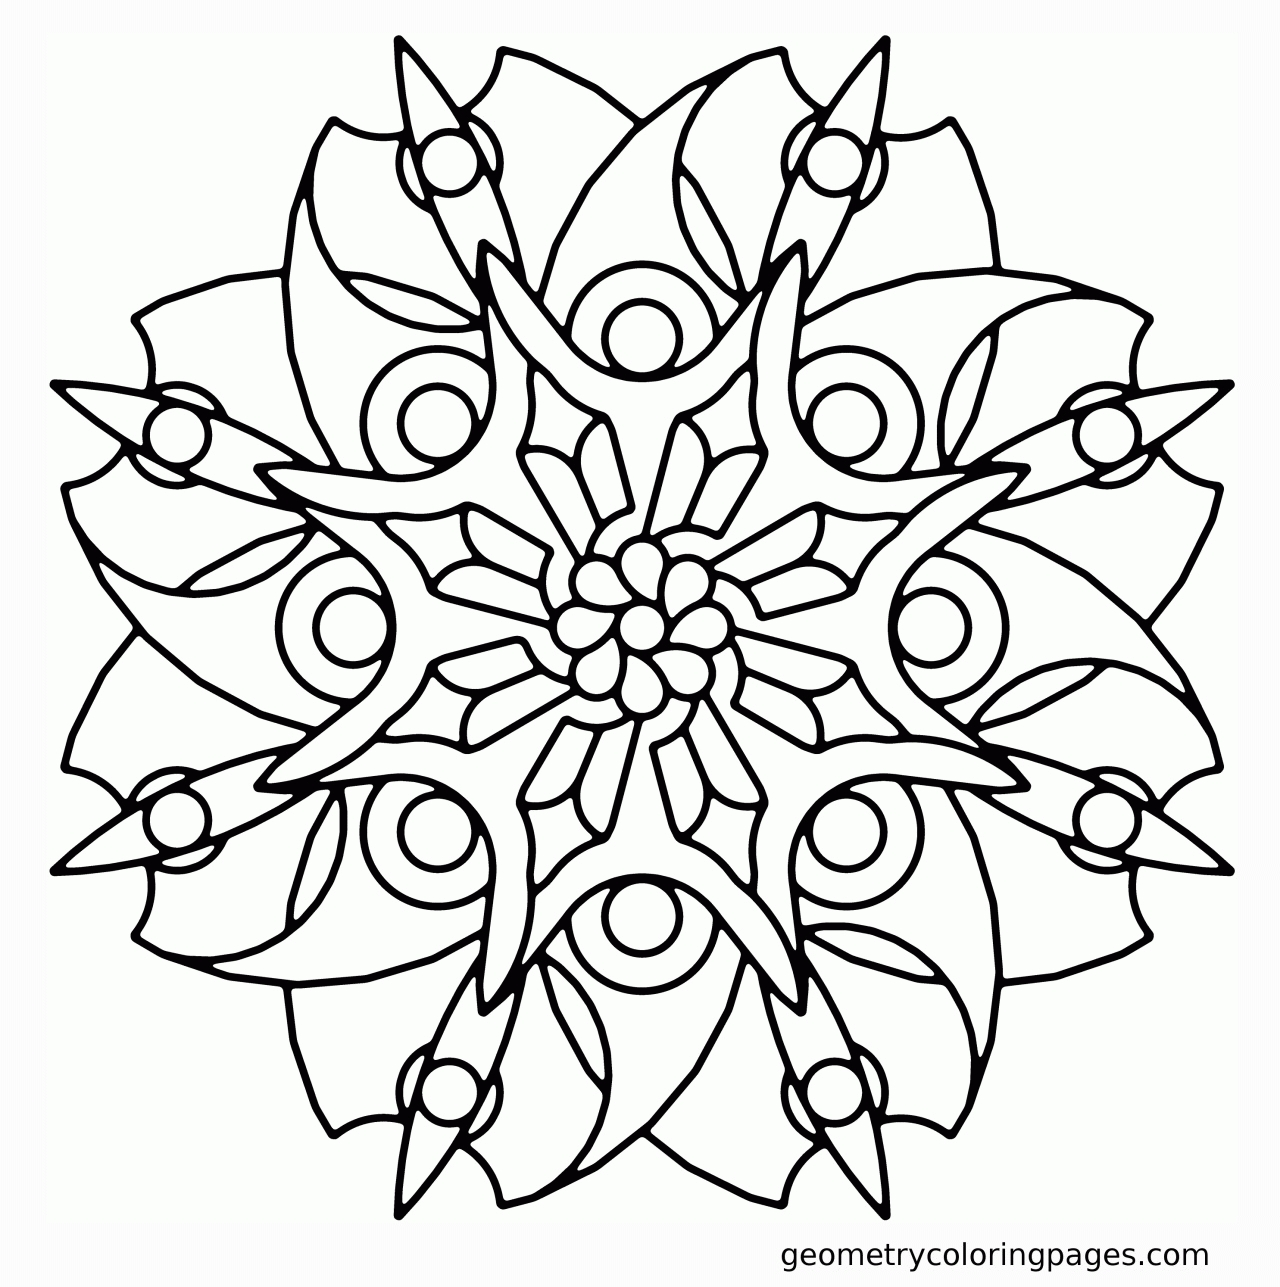 geometric coloring pages - sacred geometry coloring pages